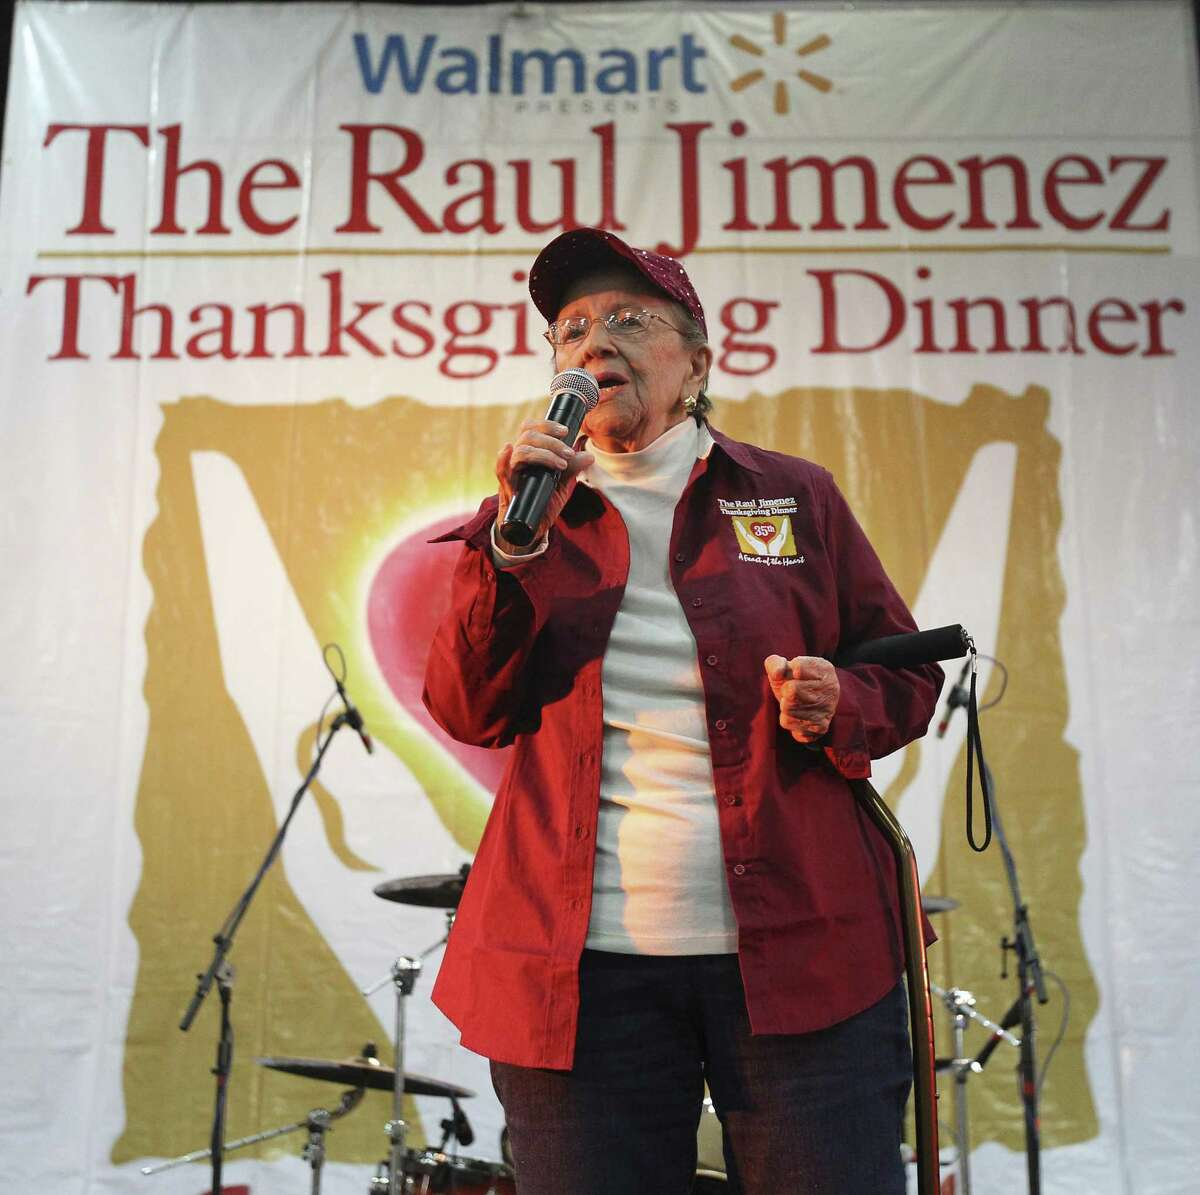 Mary Jimenez, wife of Raul Jimenez, addresses an audience at the 35th Annual Raul Jimenez Thanksgiving Dinner at the Convention Center on Thursday, Nov. 27, 2014. Each year about 25,000 guests gather for a Thanksgiving meal hosted by Patricia Jimenez who has overseen the event since the passing of her father who started the charitable event 35 years ago. About 9,400 pounds of turkey, 6,250 pounds of stuffing and green beans, 4,688 pounds of cranberry sauce and yams, 32, 000 rolls, 650 pounds of gravy and 3,000 pumpkin pies were served. The warm meal fills the heart and stomaches of many in San Antonio who may not have the ability to make do. Over 4,000 volunteers come out every year to help at the event. The remainder of the food will be donated to Daily Bread Ministries according to officials. (Kin Man Hui/San Antonio Express-News)